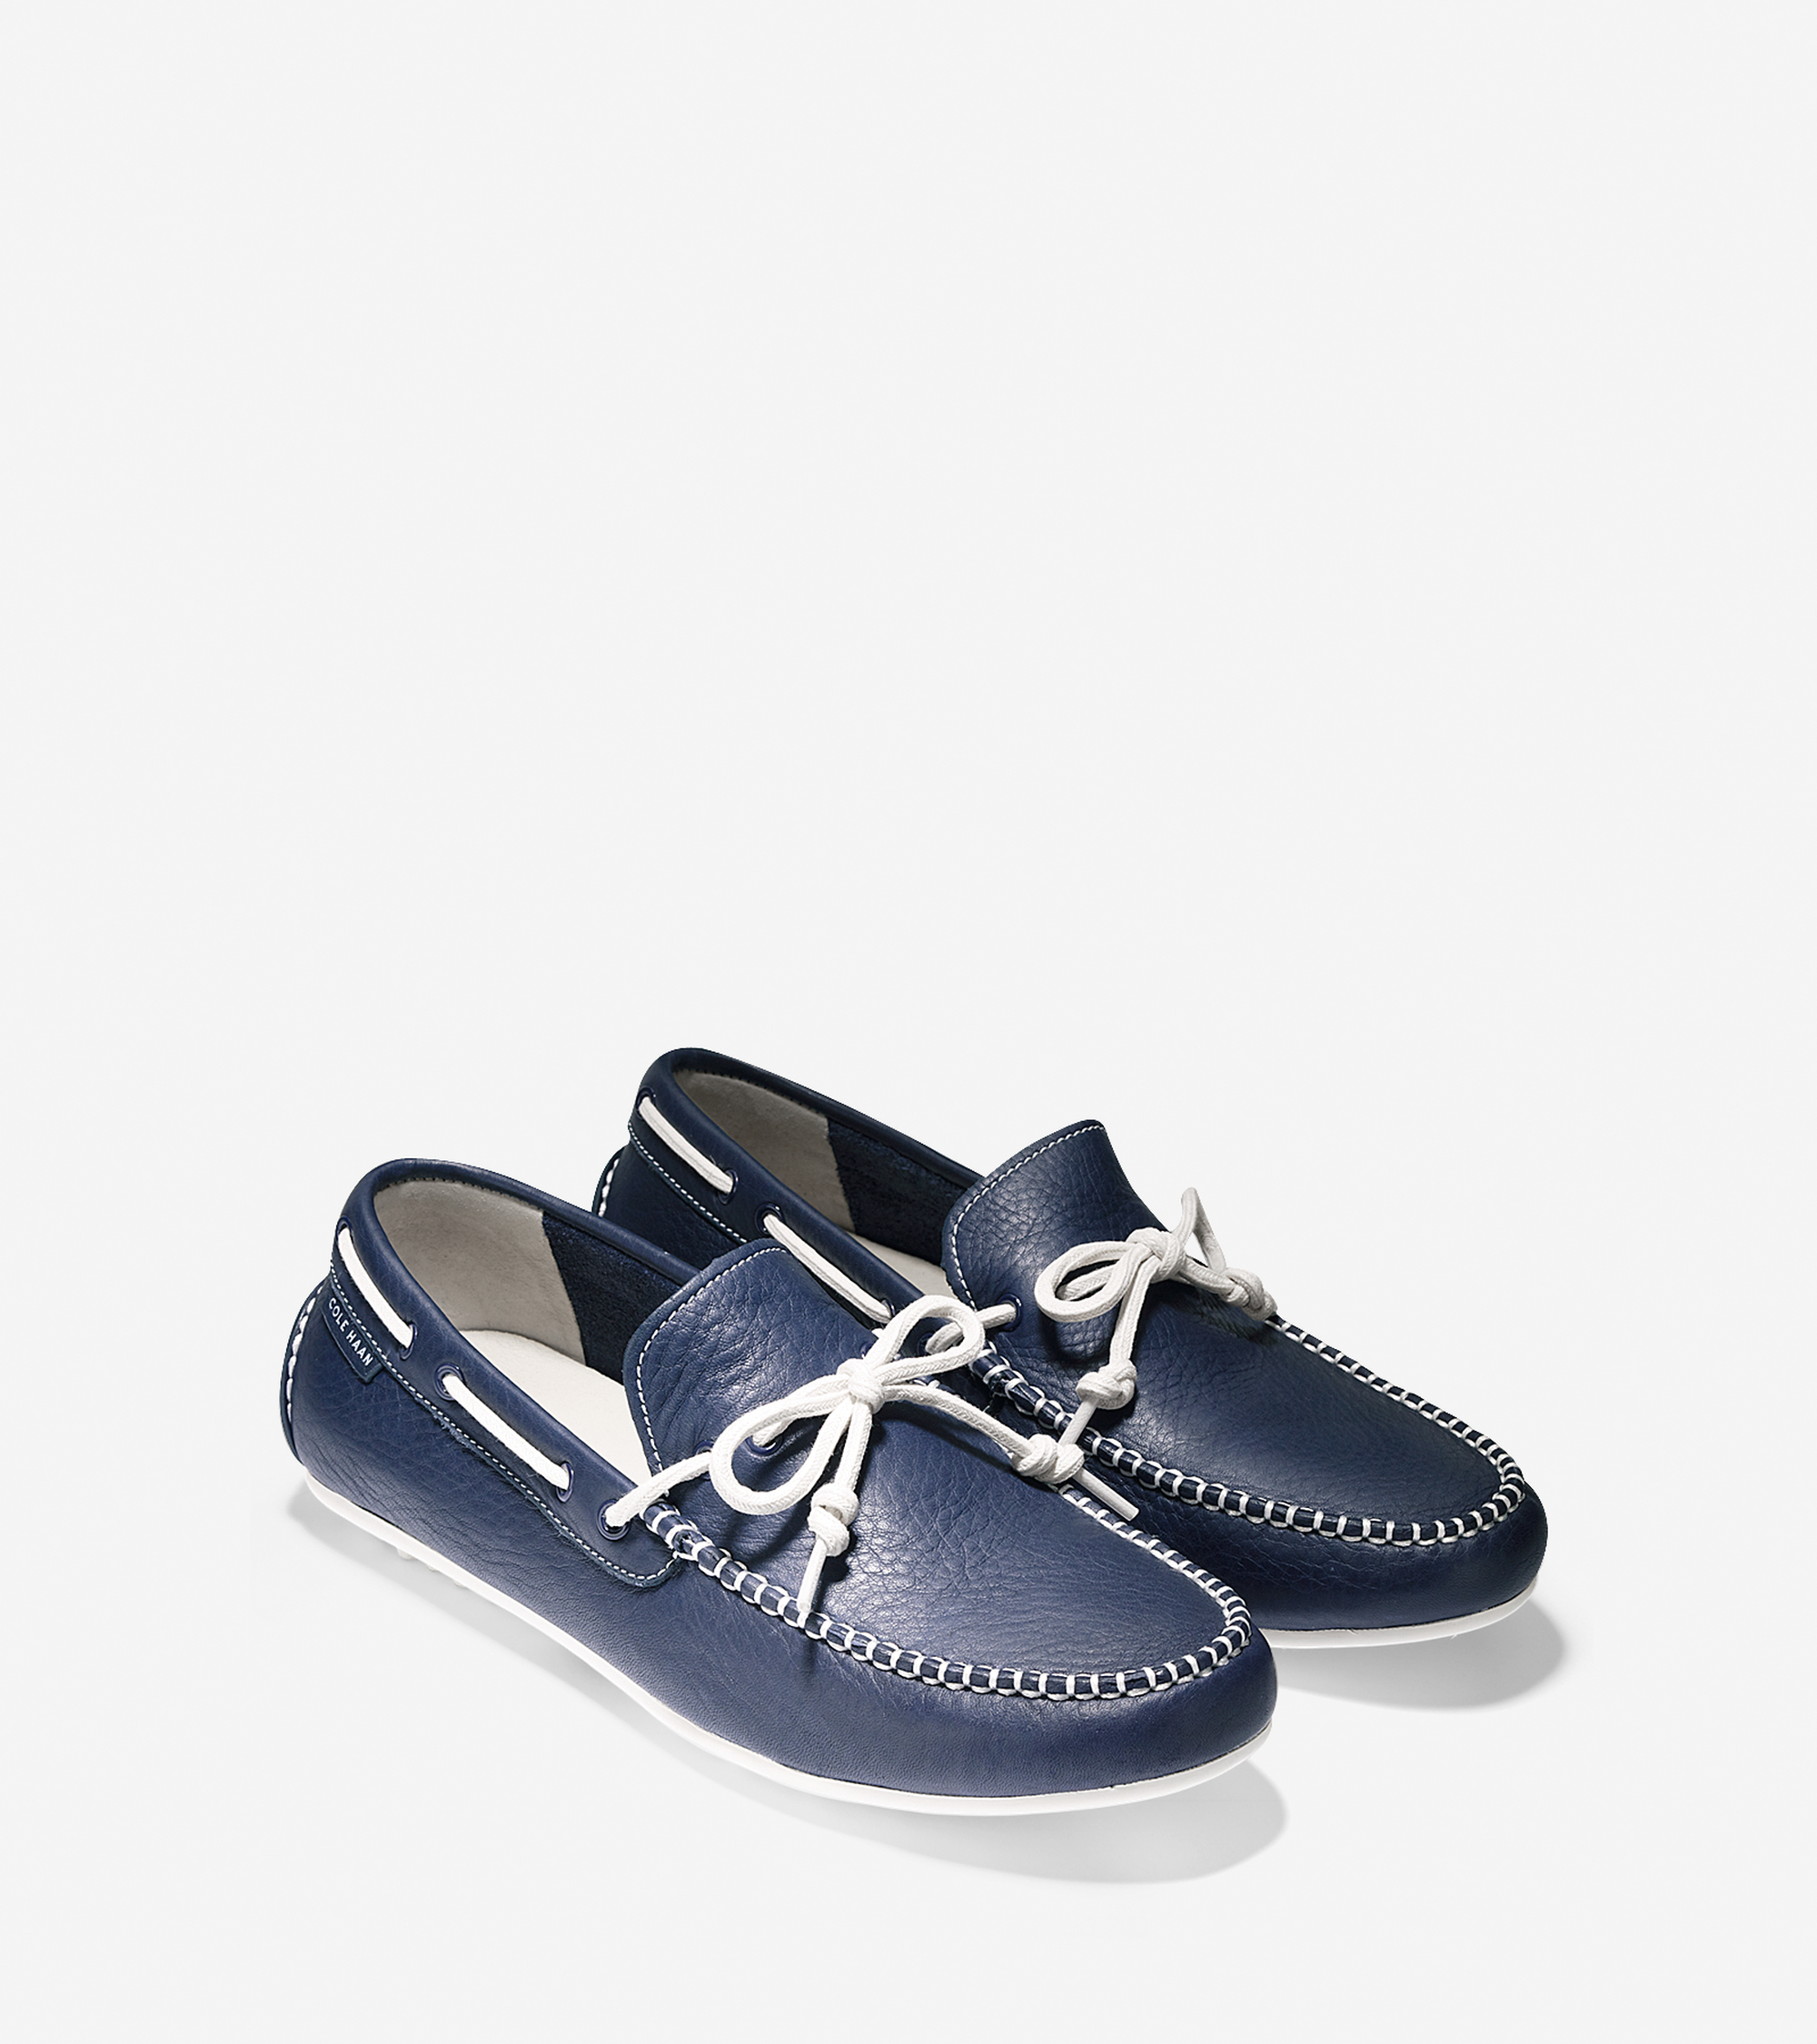 Carl Haan Mens Shoes